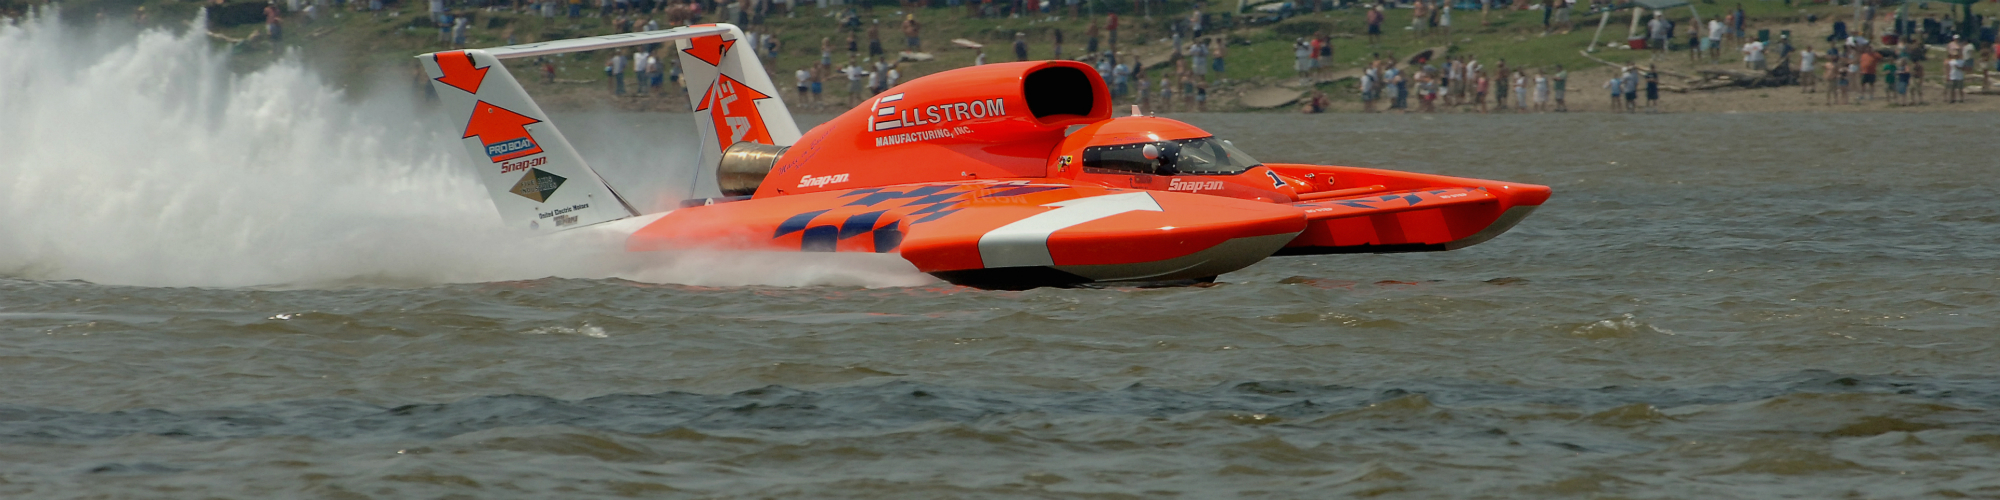 ​On October 8, 1978, Ken Warby made history when he took his motorboat over 317 miles per hour. Today, the record still stands officially at 317.58 miles per hour and official attempts to break it have been minimal due to safety concerns. For a man in the small English village of Hoveton, however, it appears records were meant to be broken.